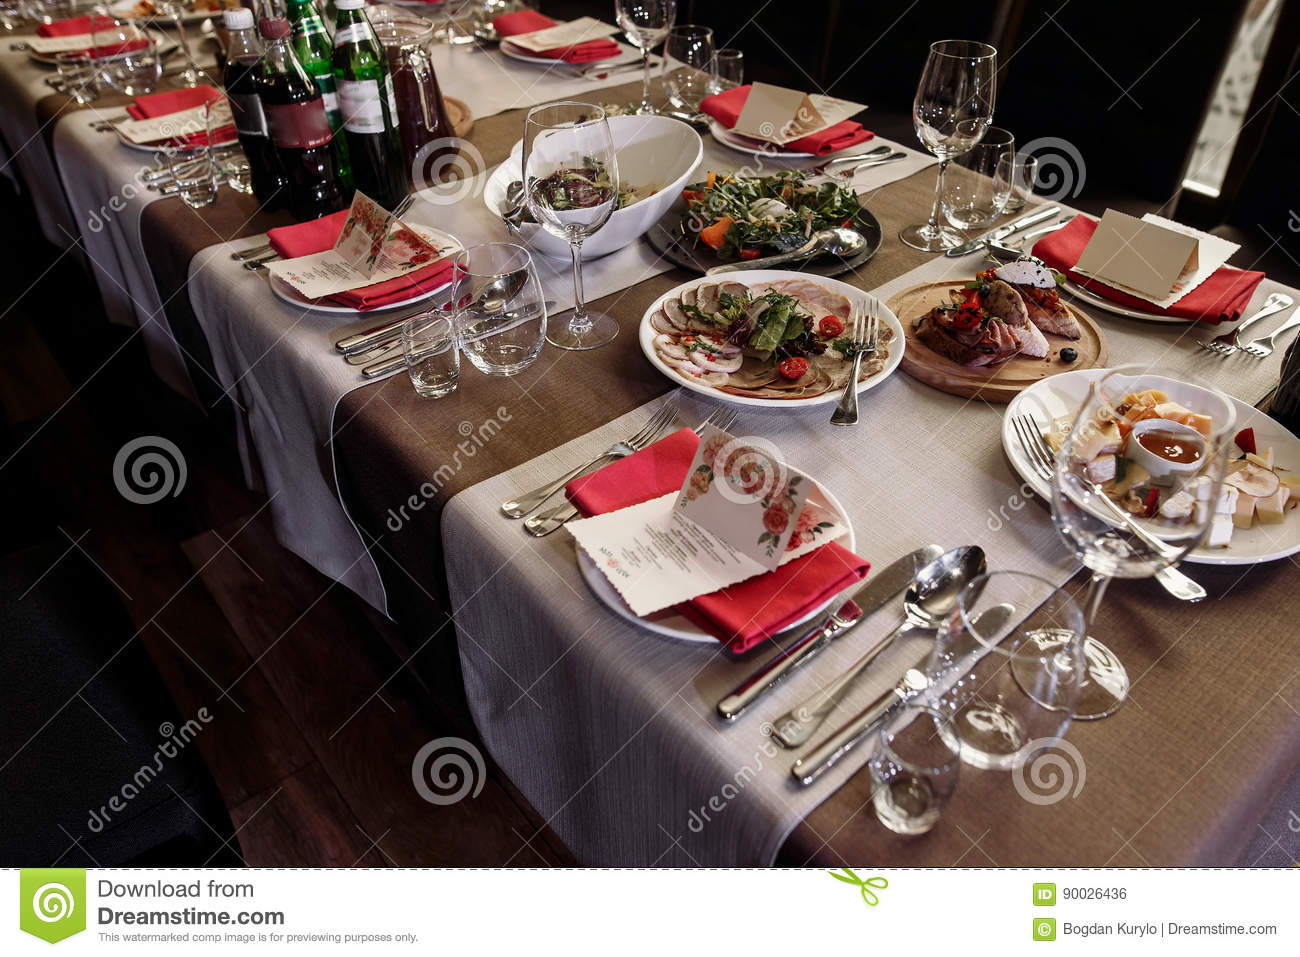 Luxury Catering At Restaurant Wedding Reception Special Occasion Table Arrangement In Brown Rustic Colors Food Glasses And Ta Stock Photo Image Of Fine Celebration 90026436